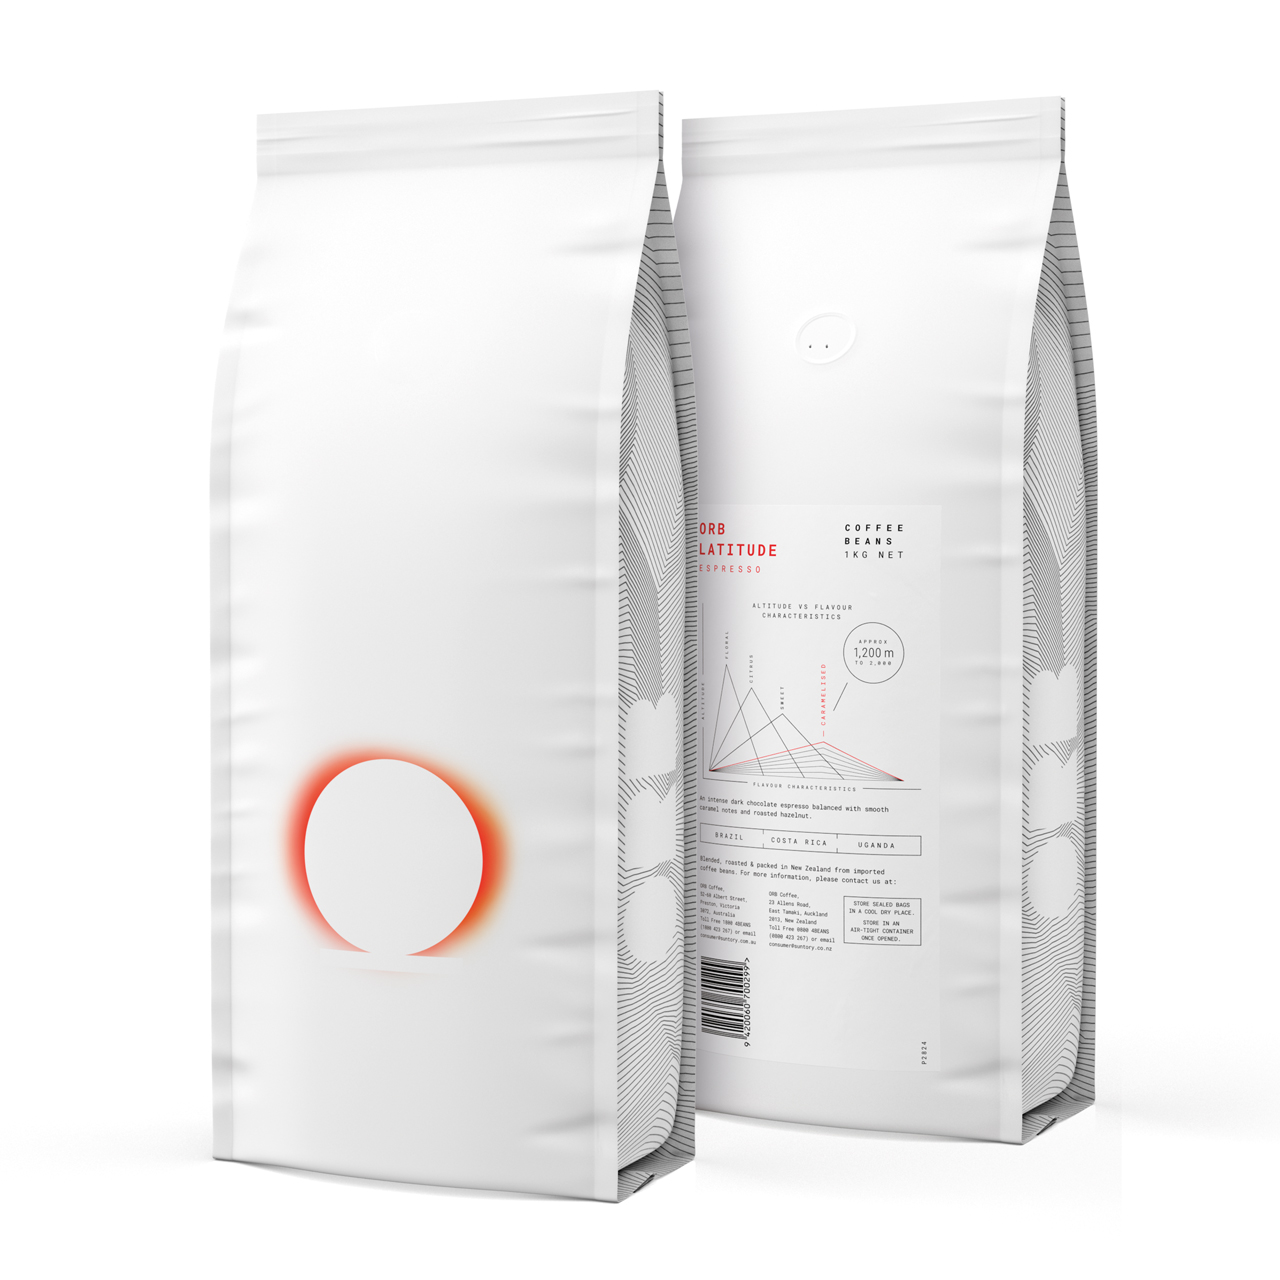 Orb Espresso Coffee 1kg Bag Render